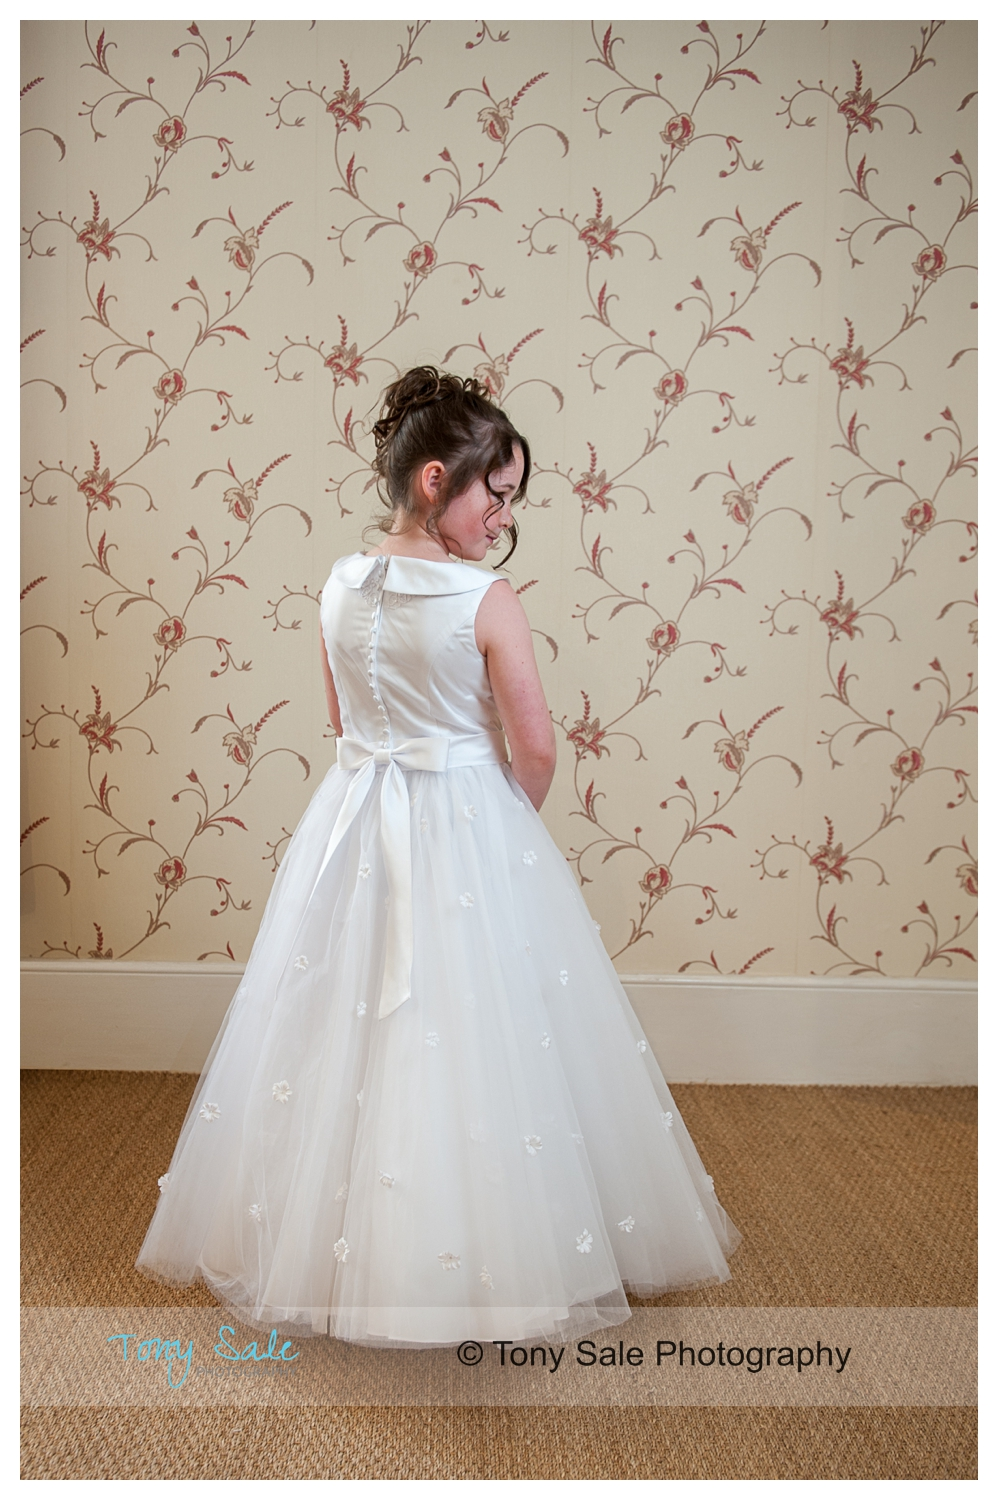 First Communion Dresses_Tony Sale Photography